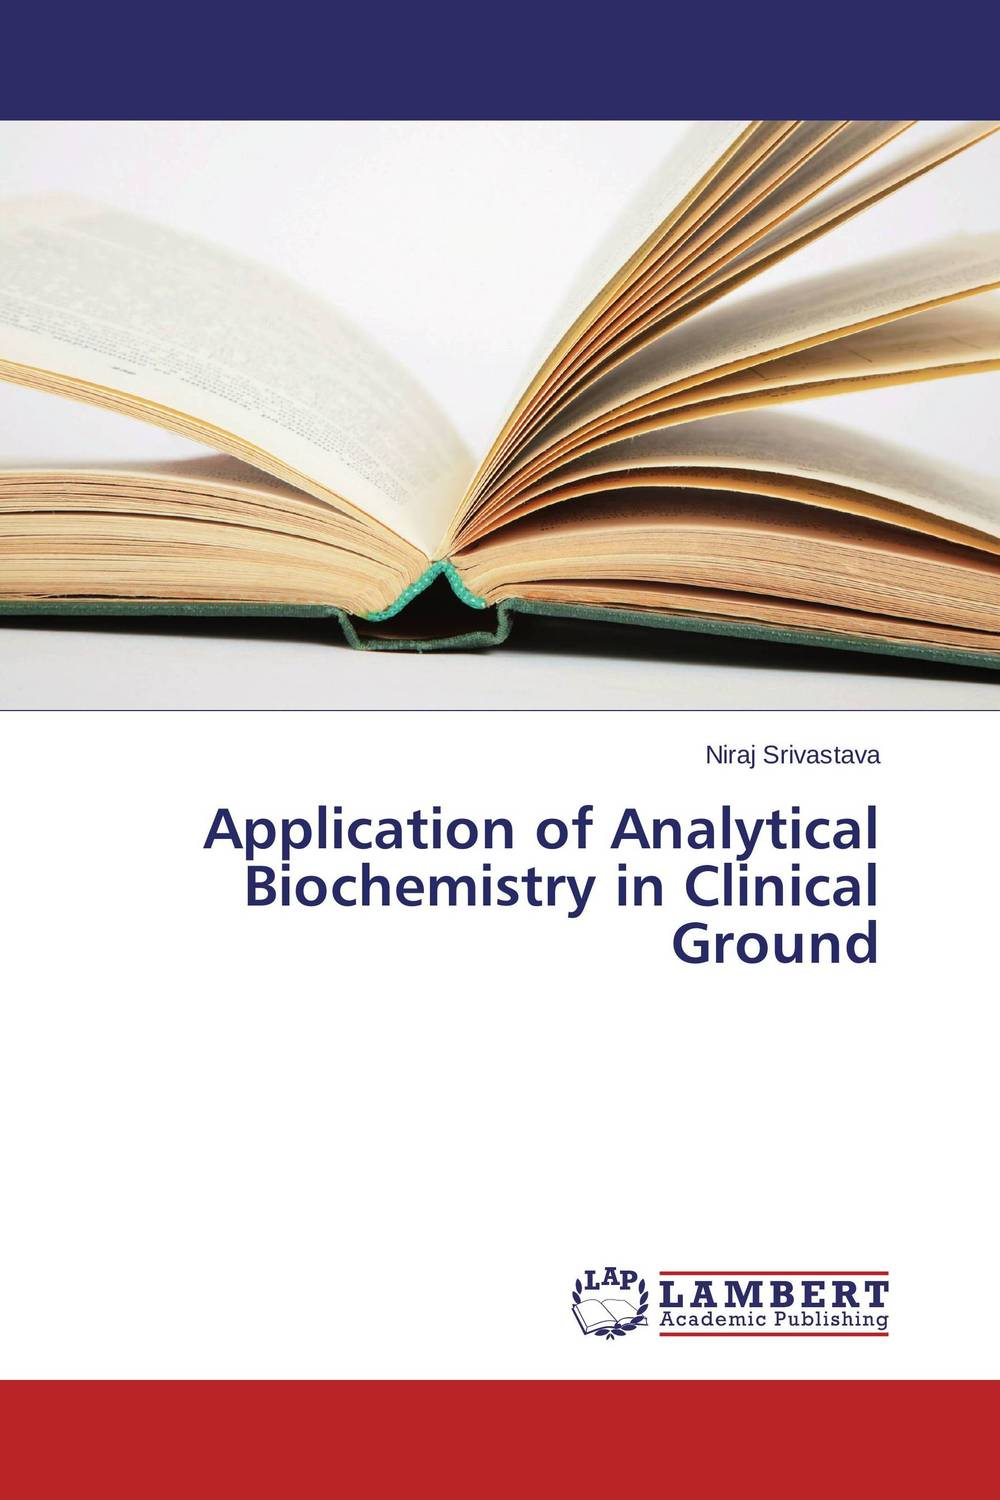 Application of Analytical Biochemistry in Clinical Ground ifo alex amata and job akpodiete agricultural biochemistry and methods